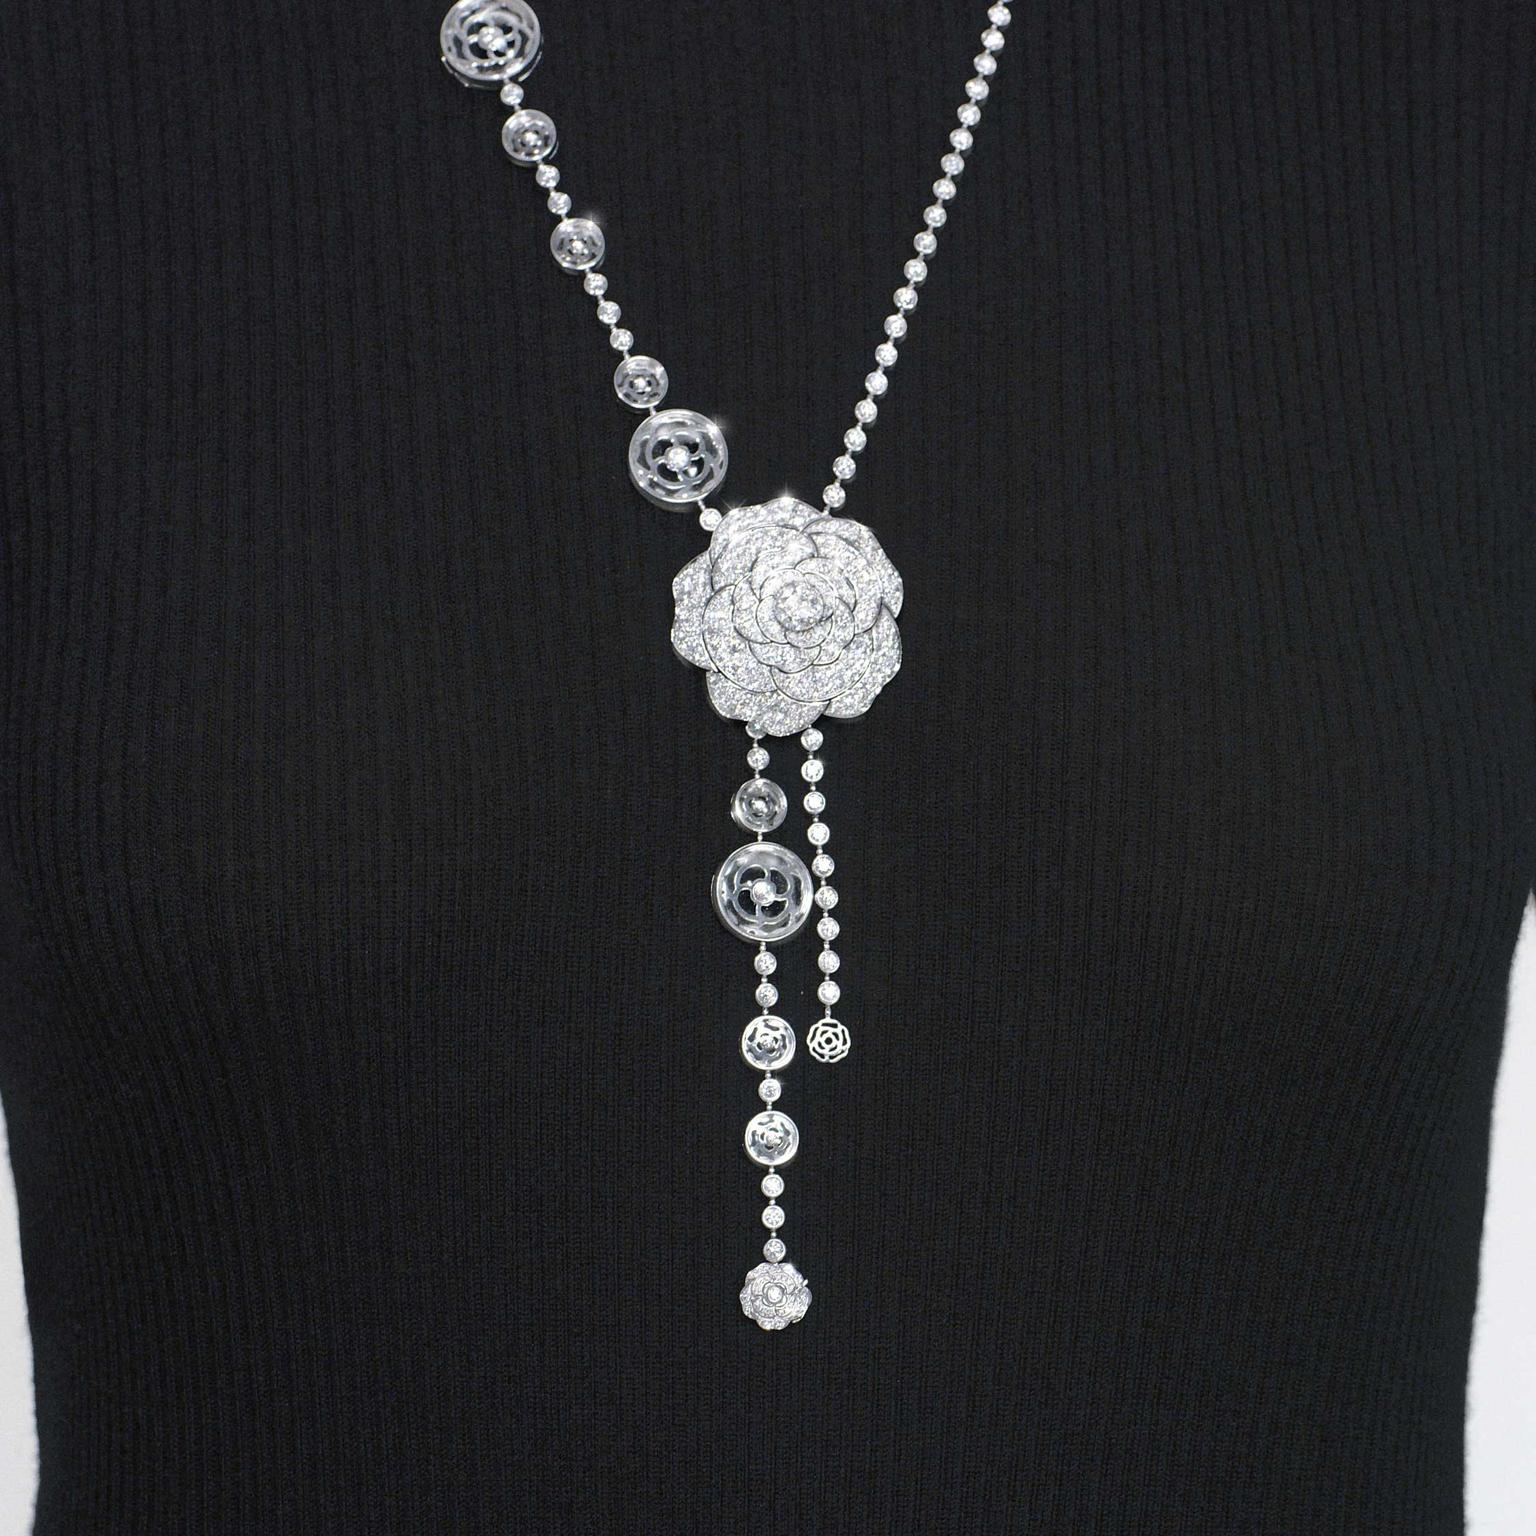 Chanel 1 5 Cristal Illusion white gold and diamond necklace long